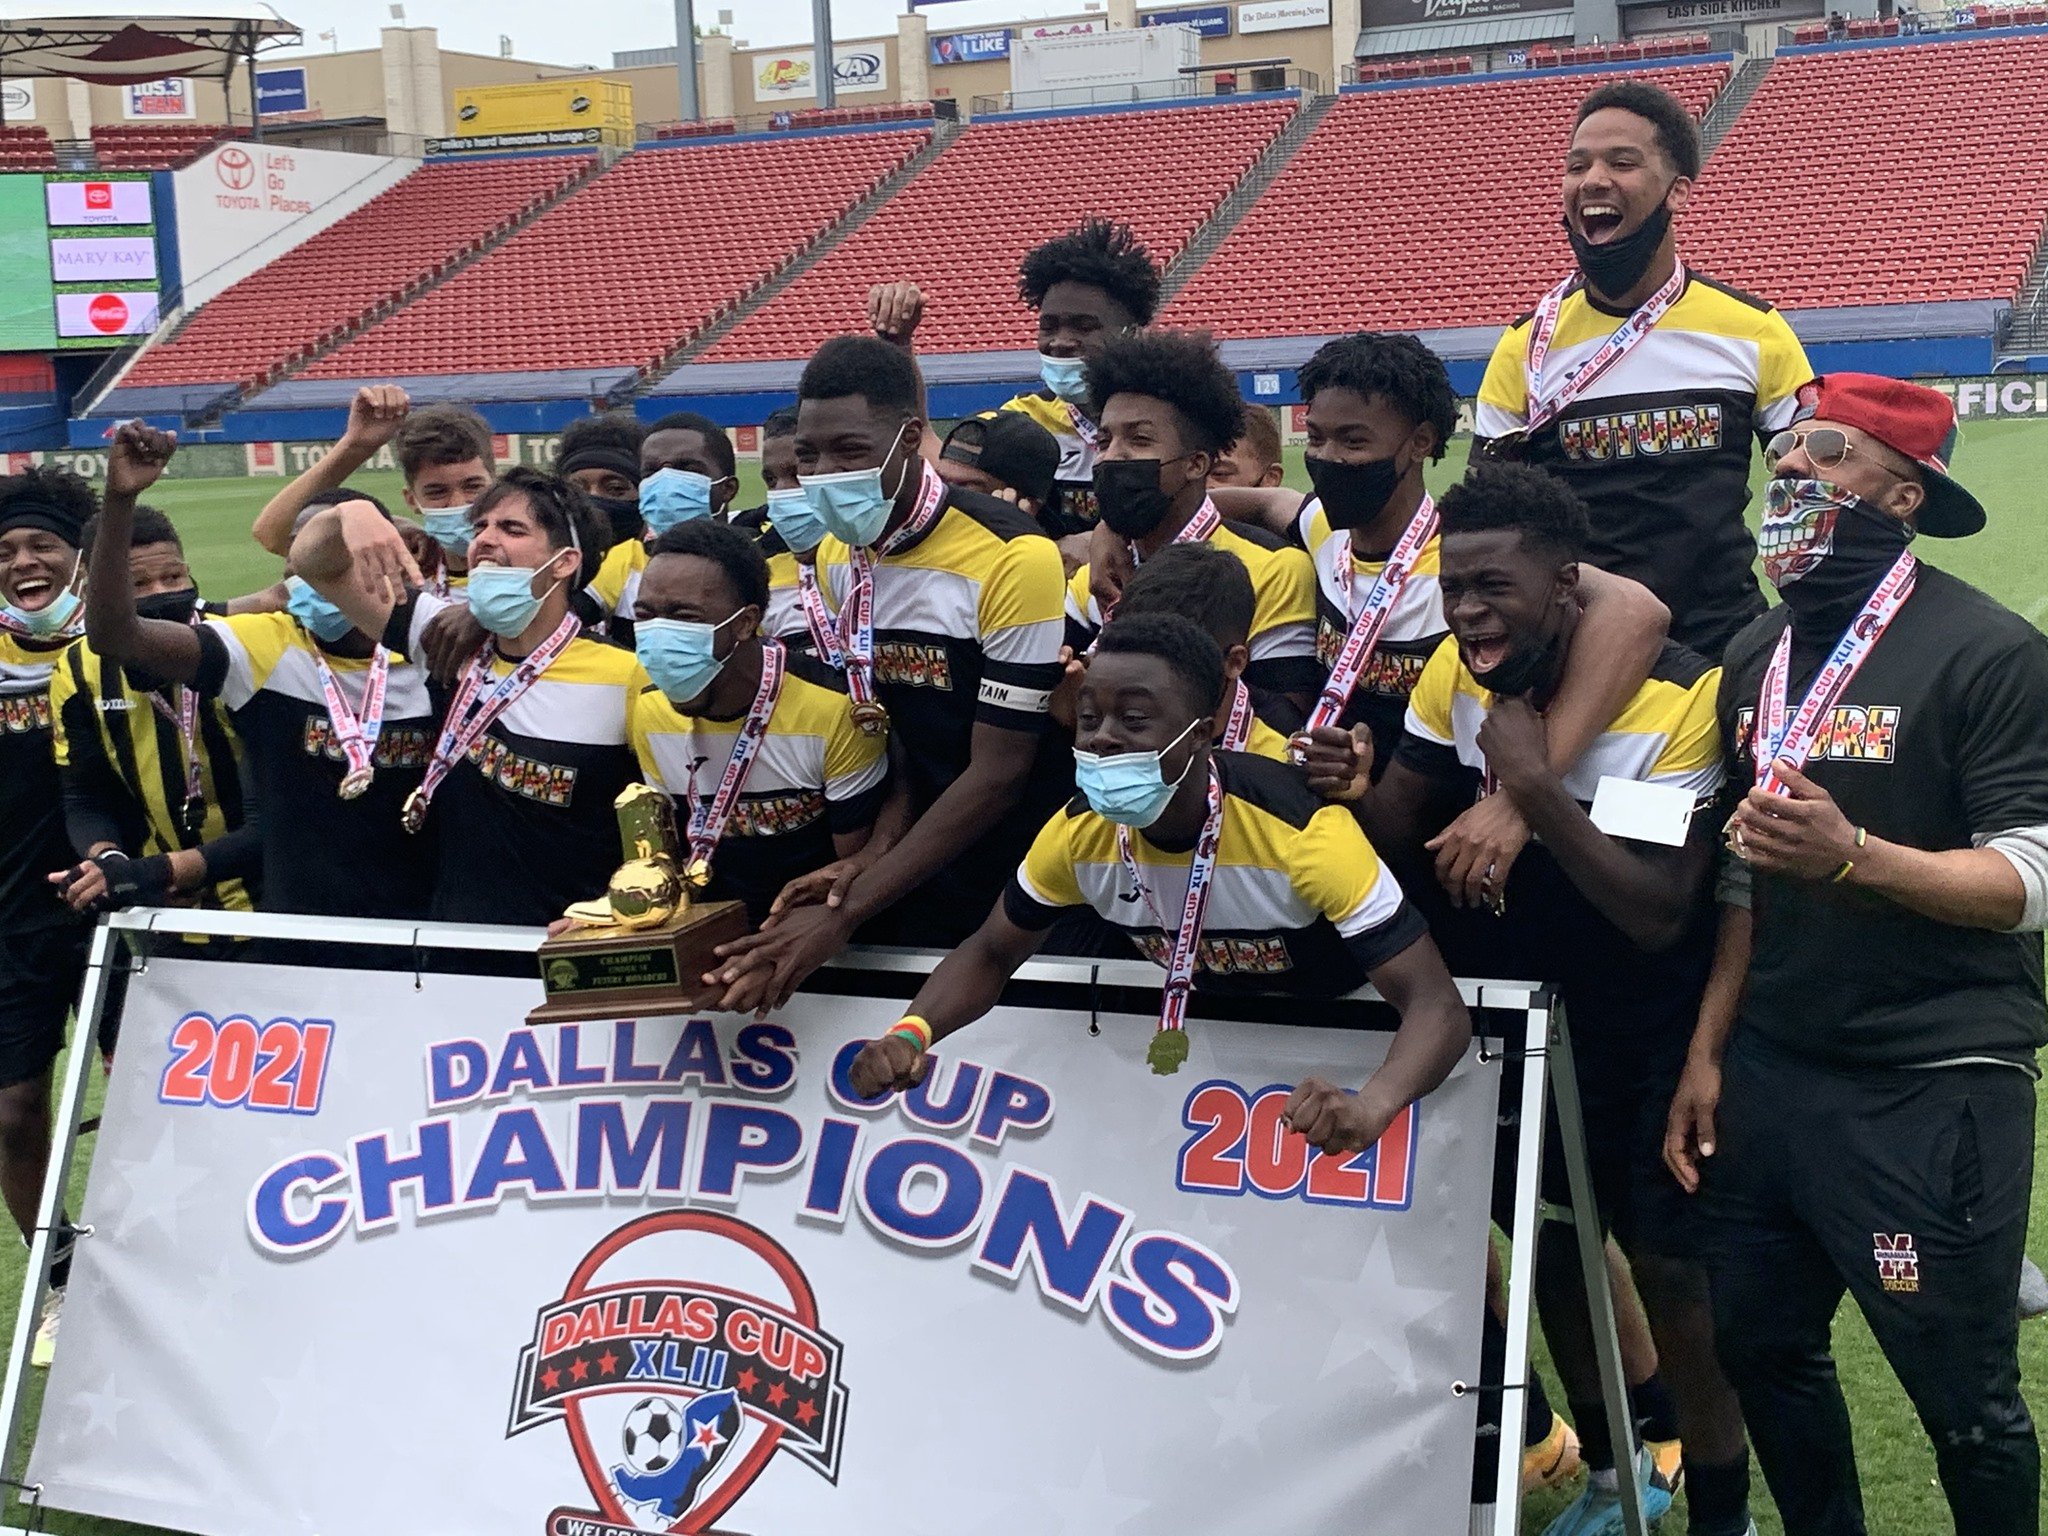 Dallas Cup winners U-18 Future Soccer Club to feature at the D.C. Cup